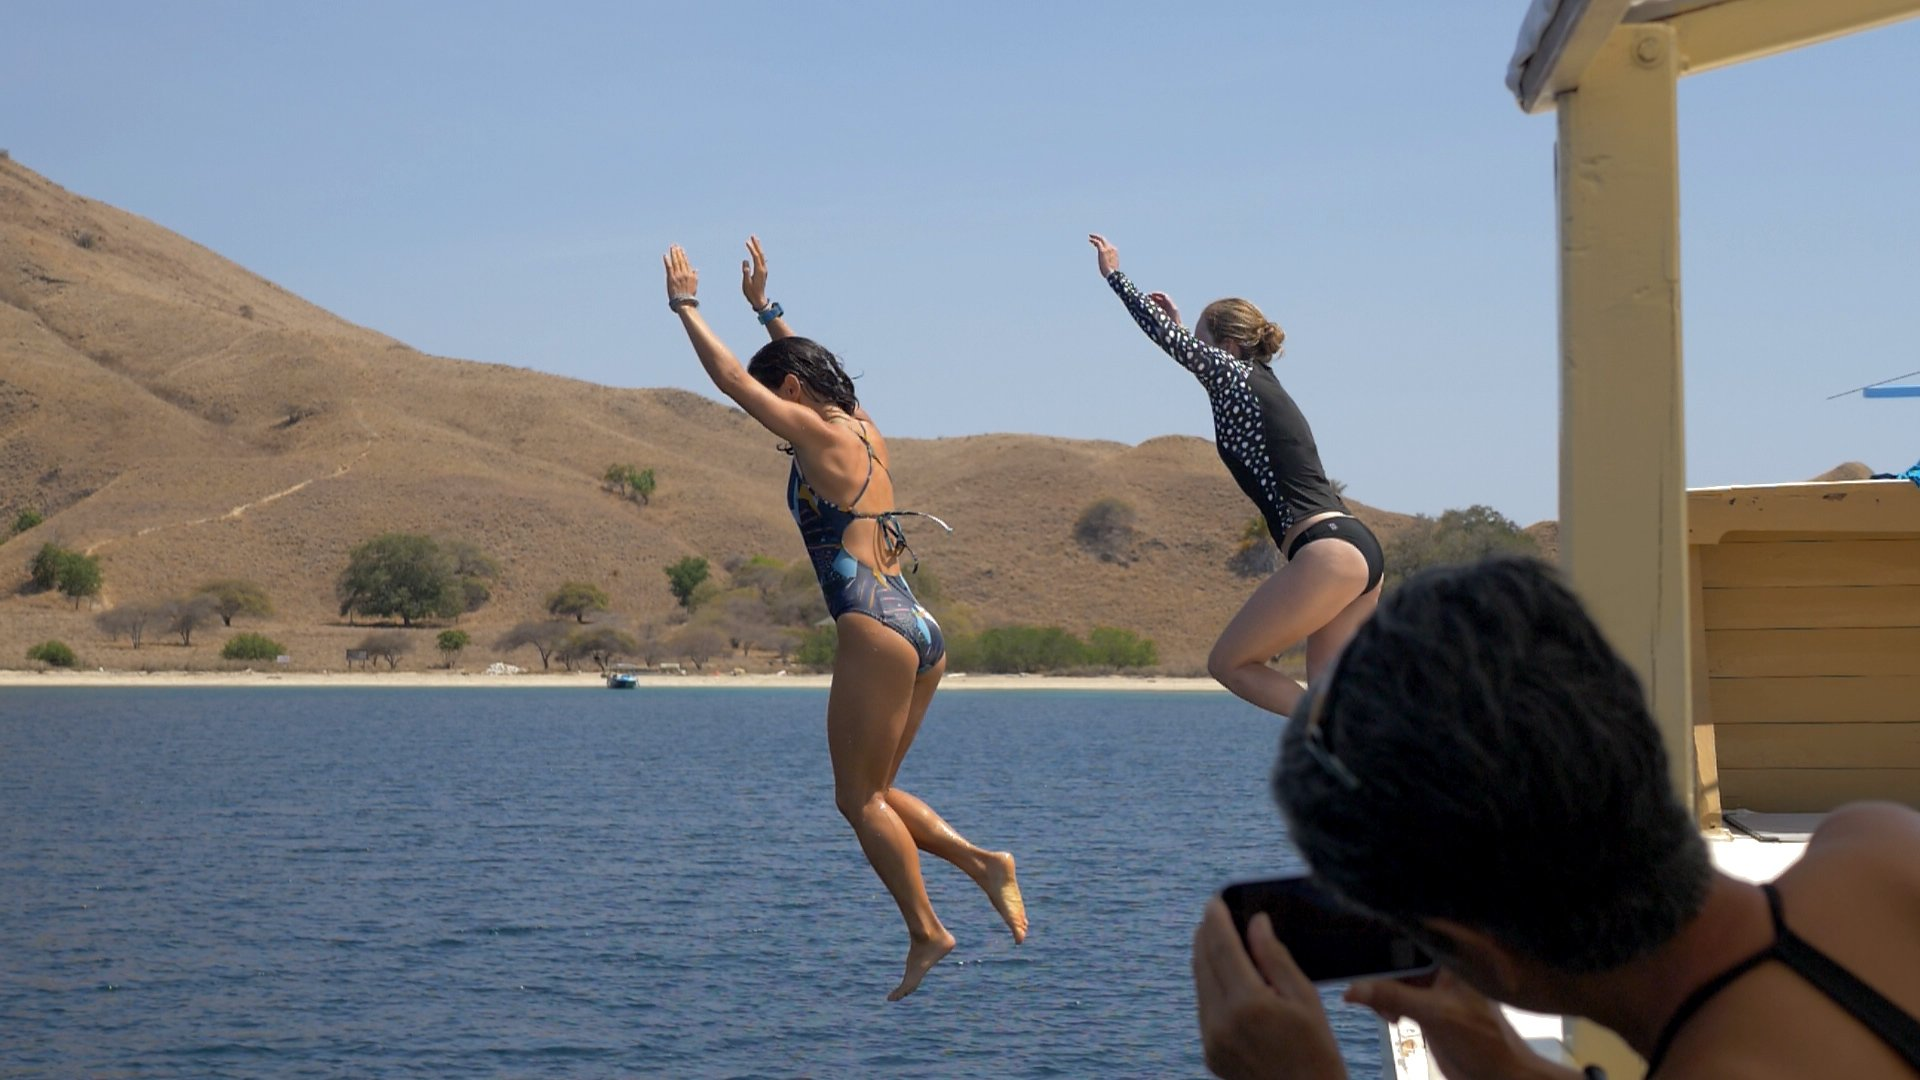 Snorkel Venture guests jumping off boat